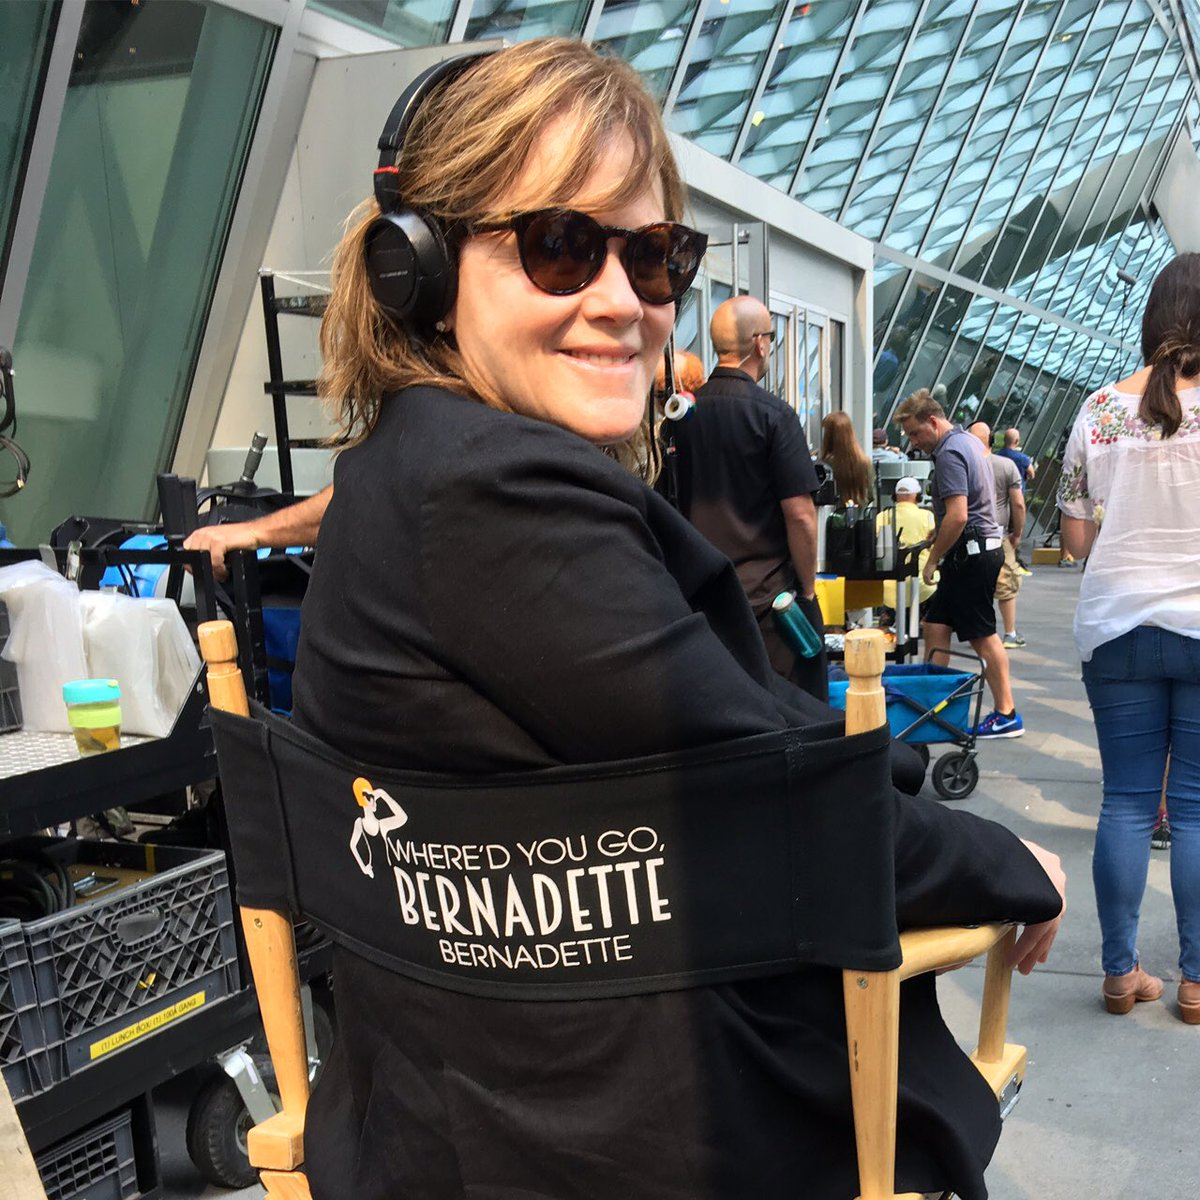 #Seattle! Bernadette has landed...